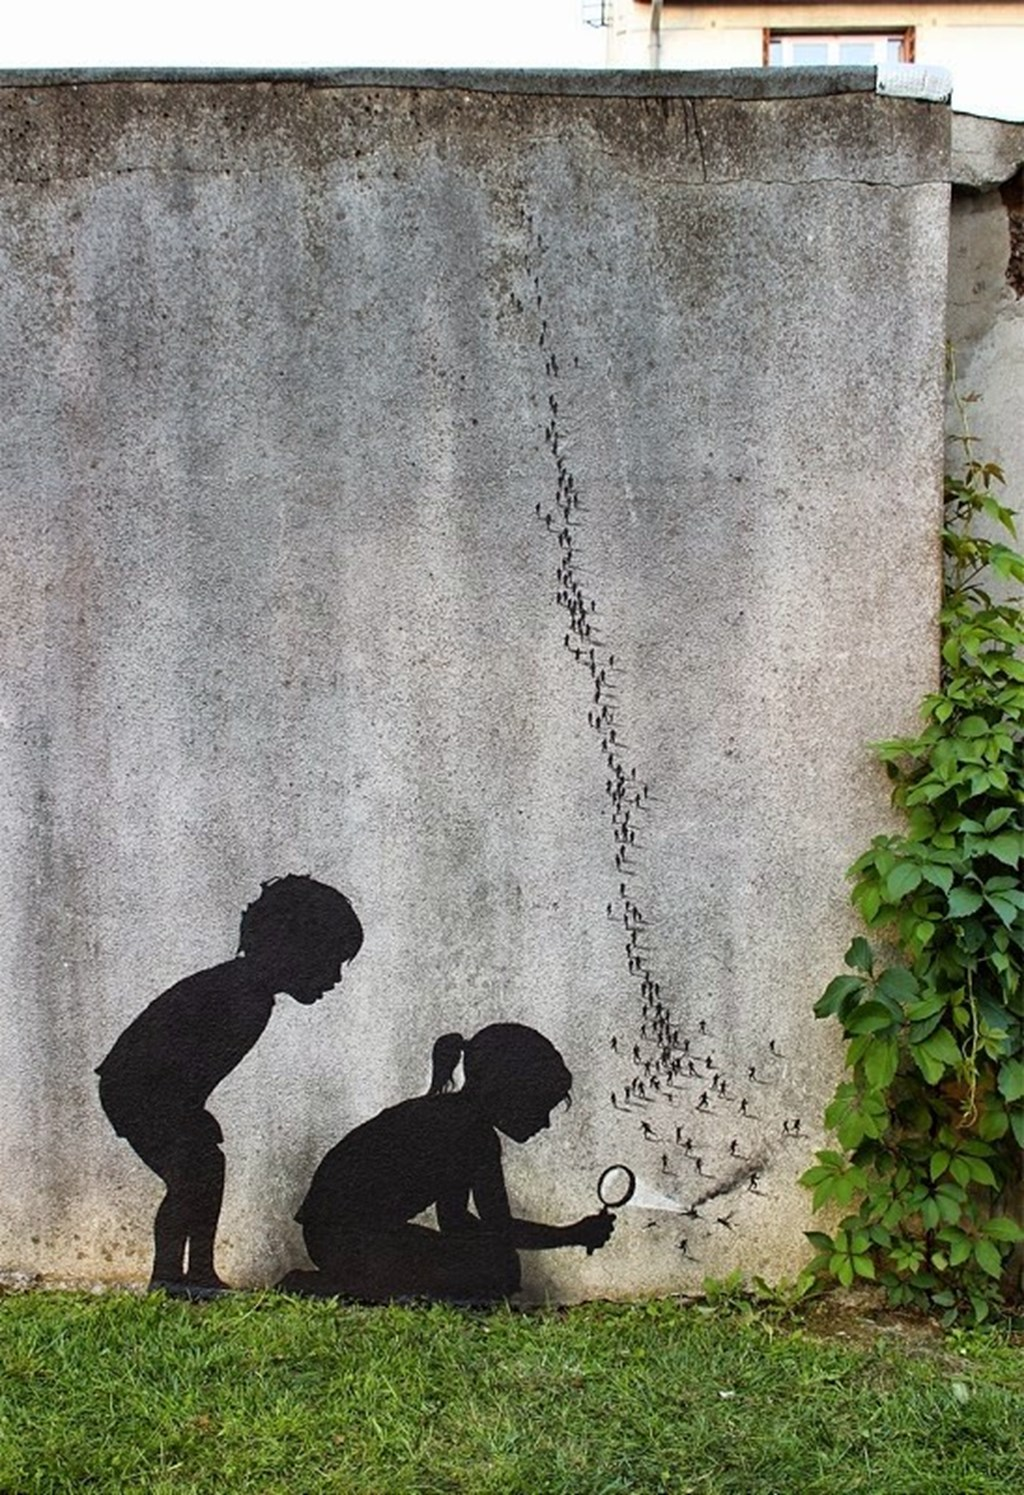 New Site Specific Paintings By Pejac